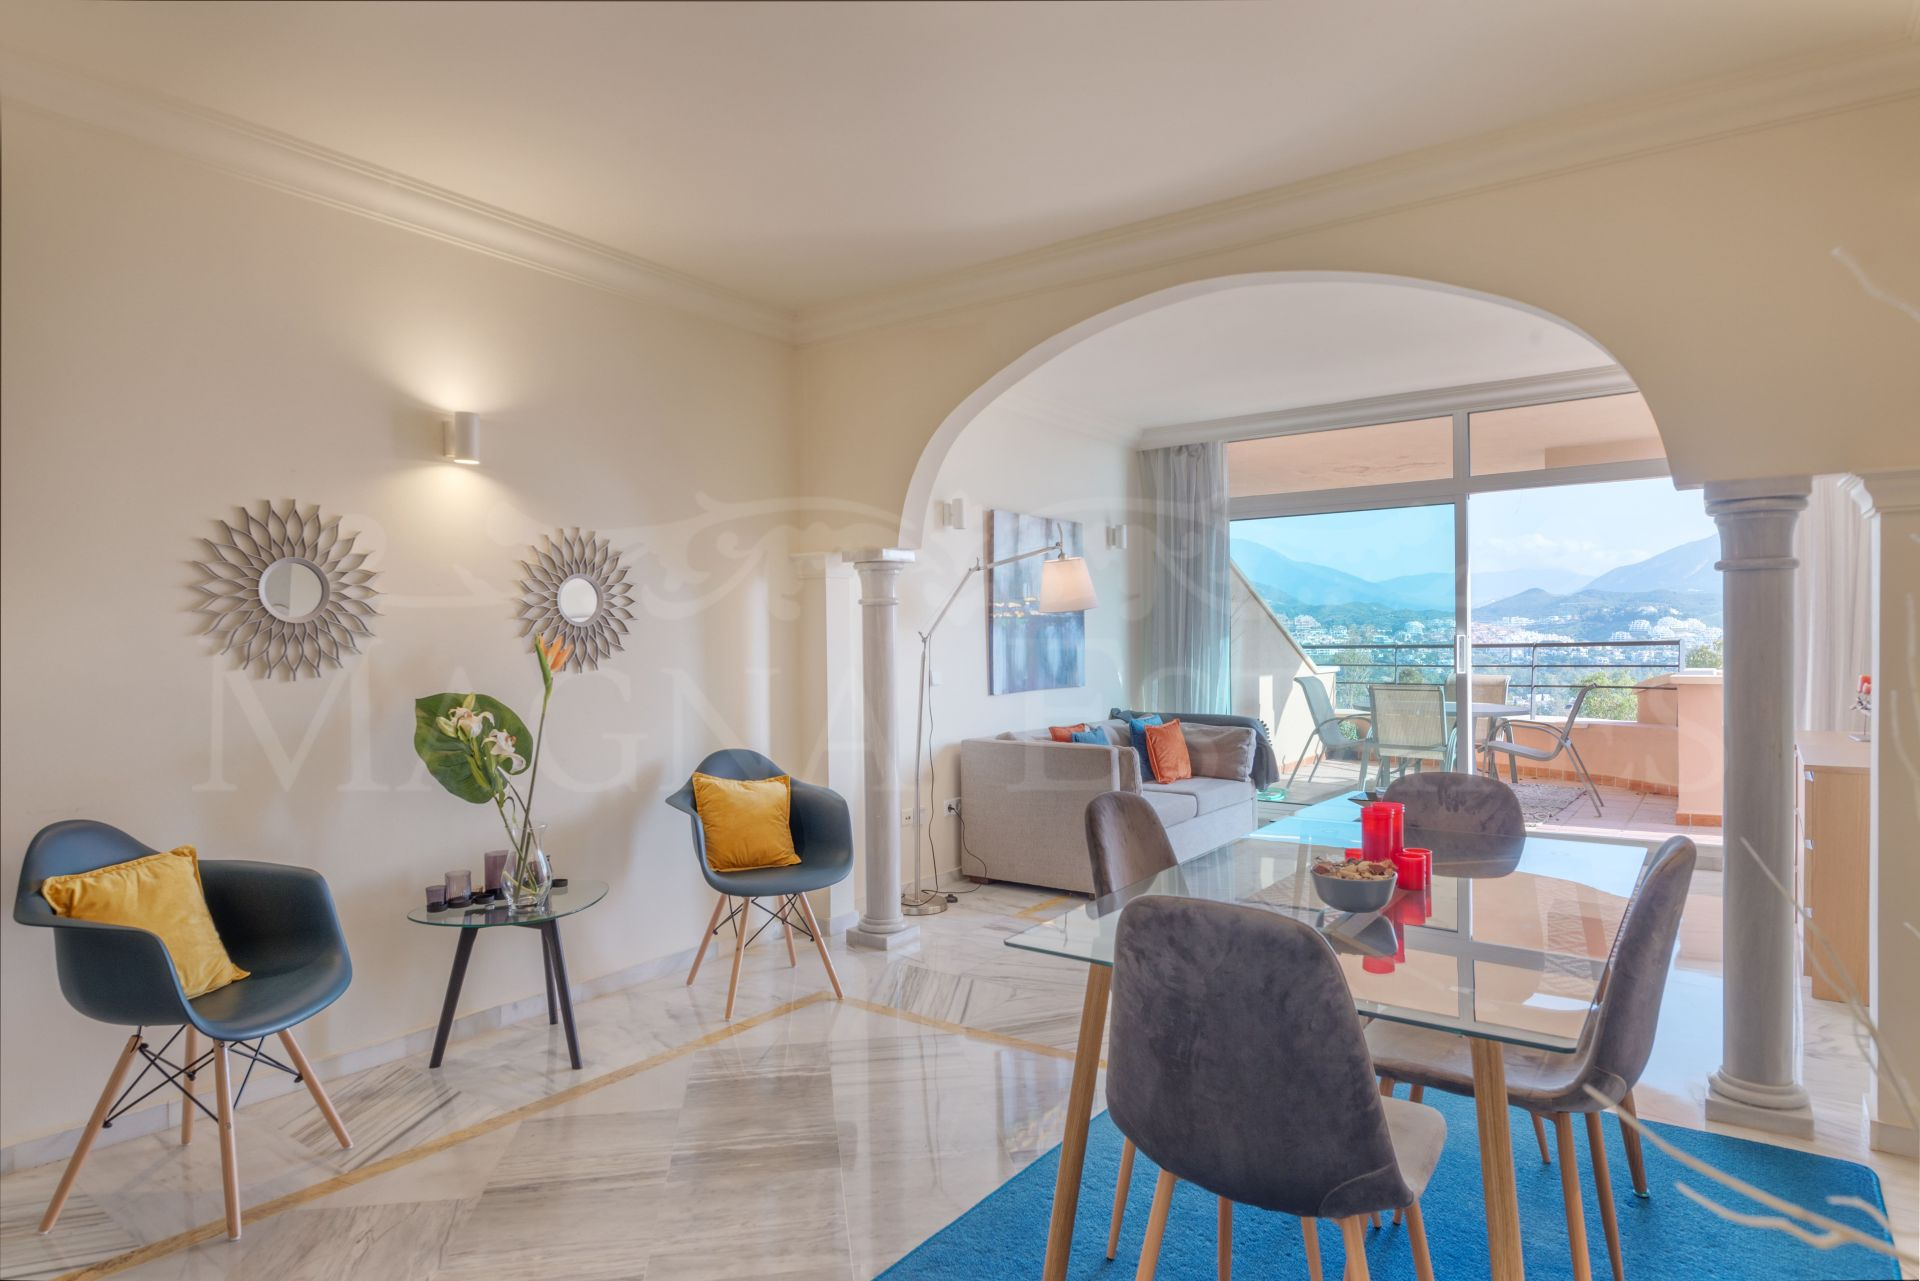 Apartment in Magna Marbella, with sea and mountains views